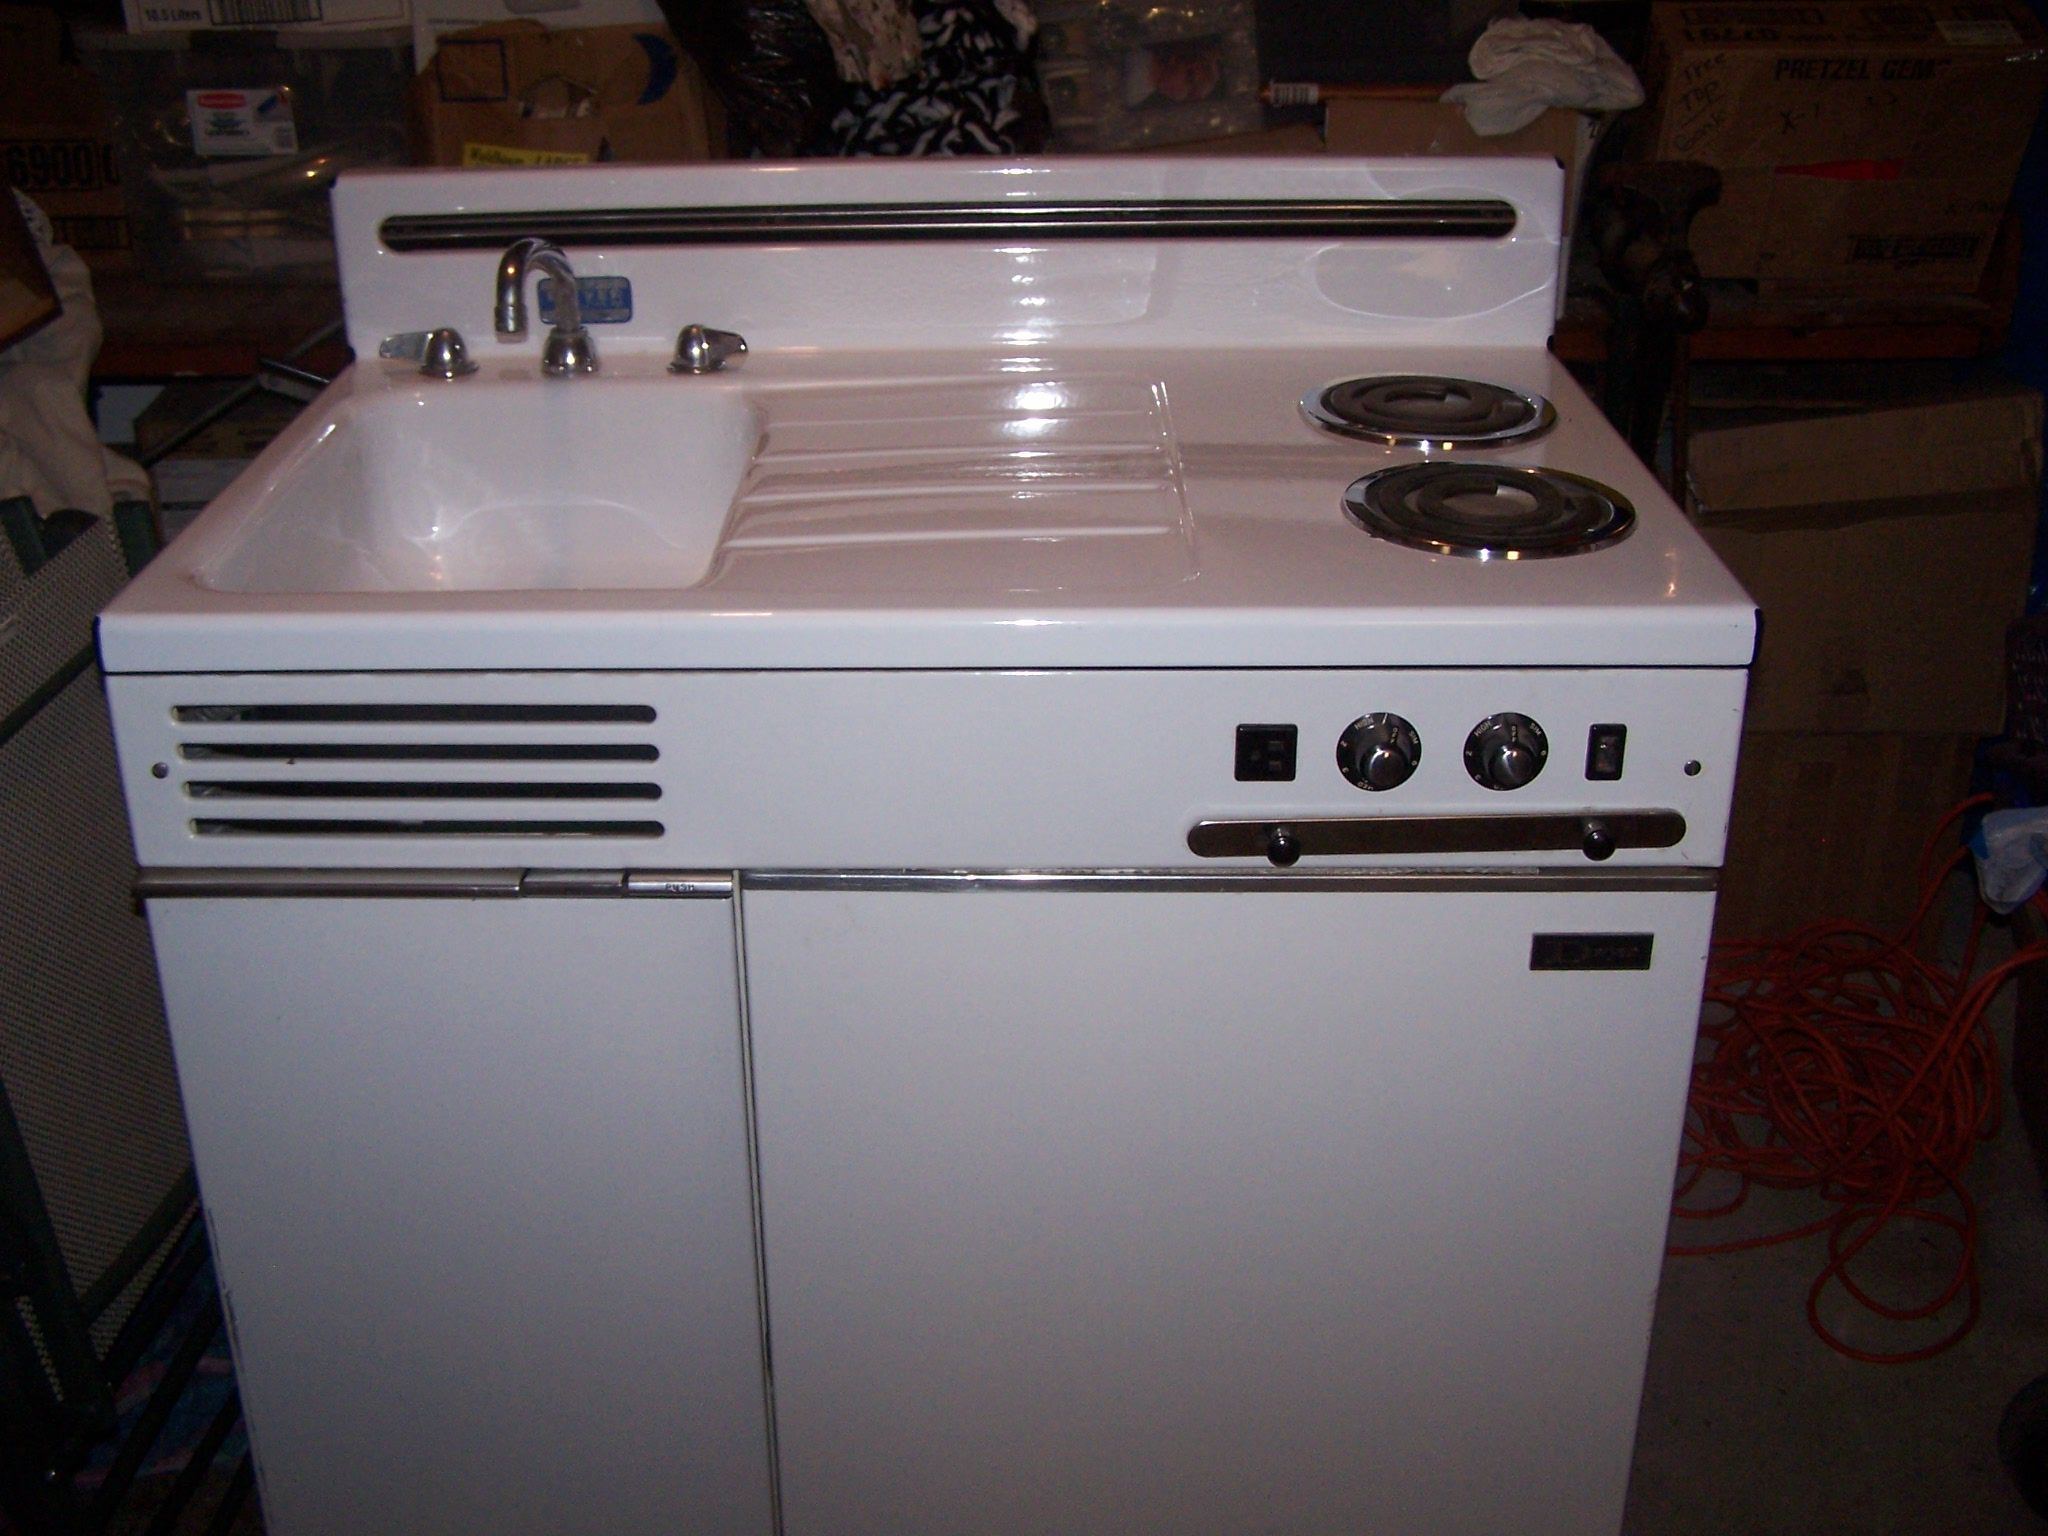 Awesome All In One Kitchen Units | Have A Dwyer All In One Kitchen Unit Circa 1950